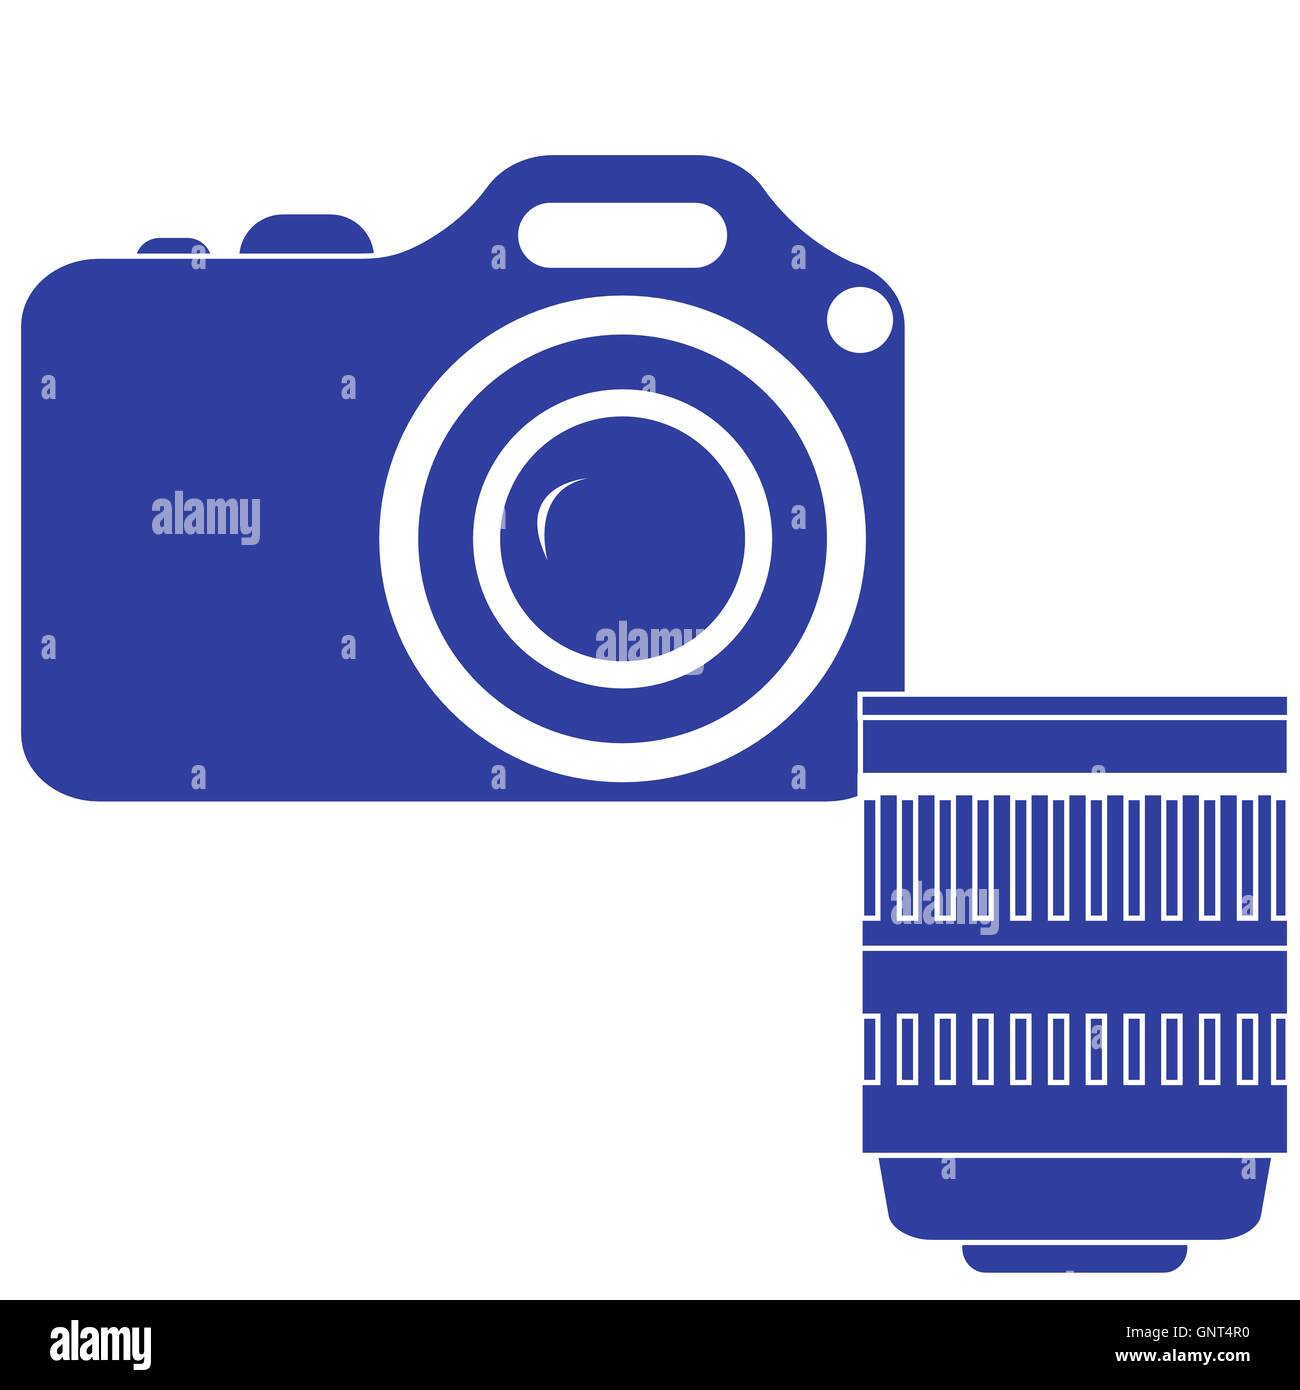 Stylized icon of a colored camera with lens on a white background - Stock Vector